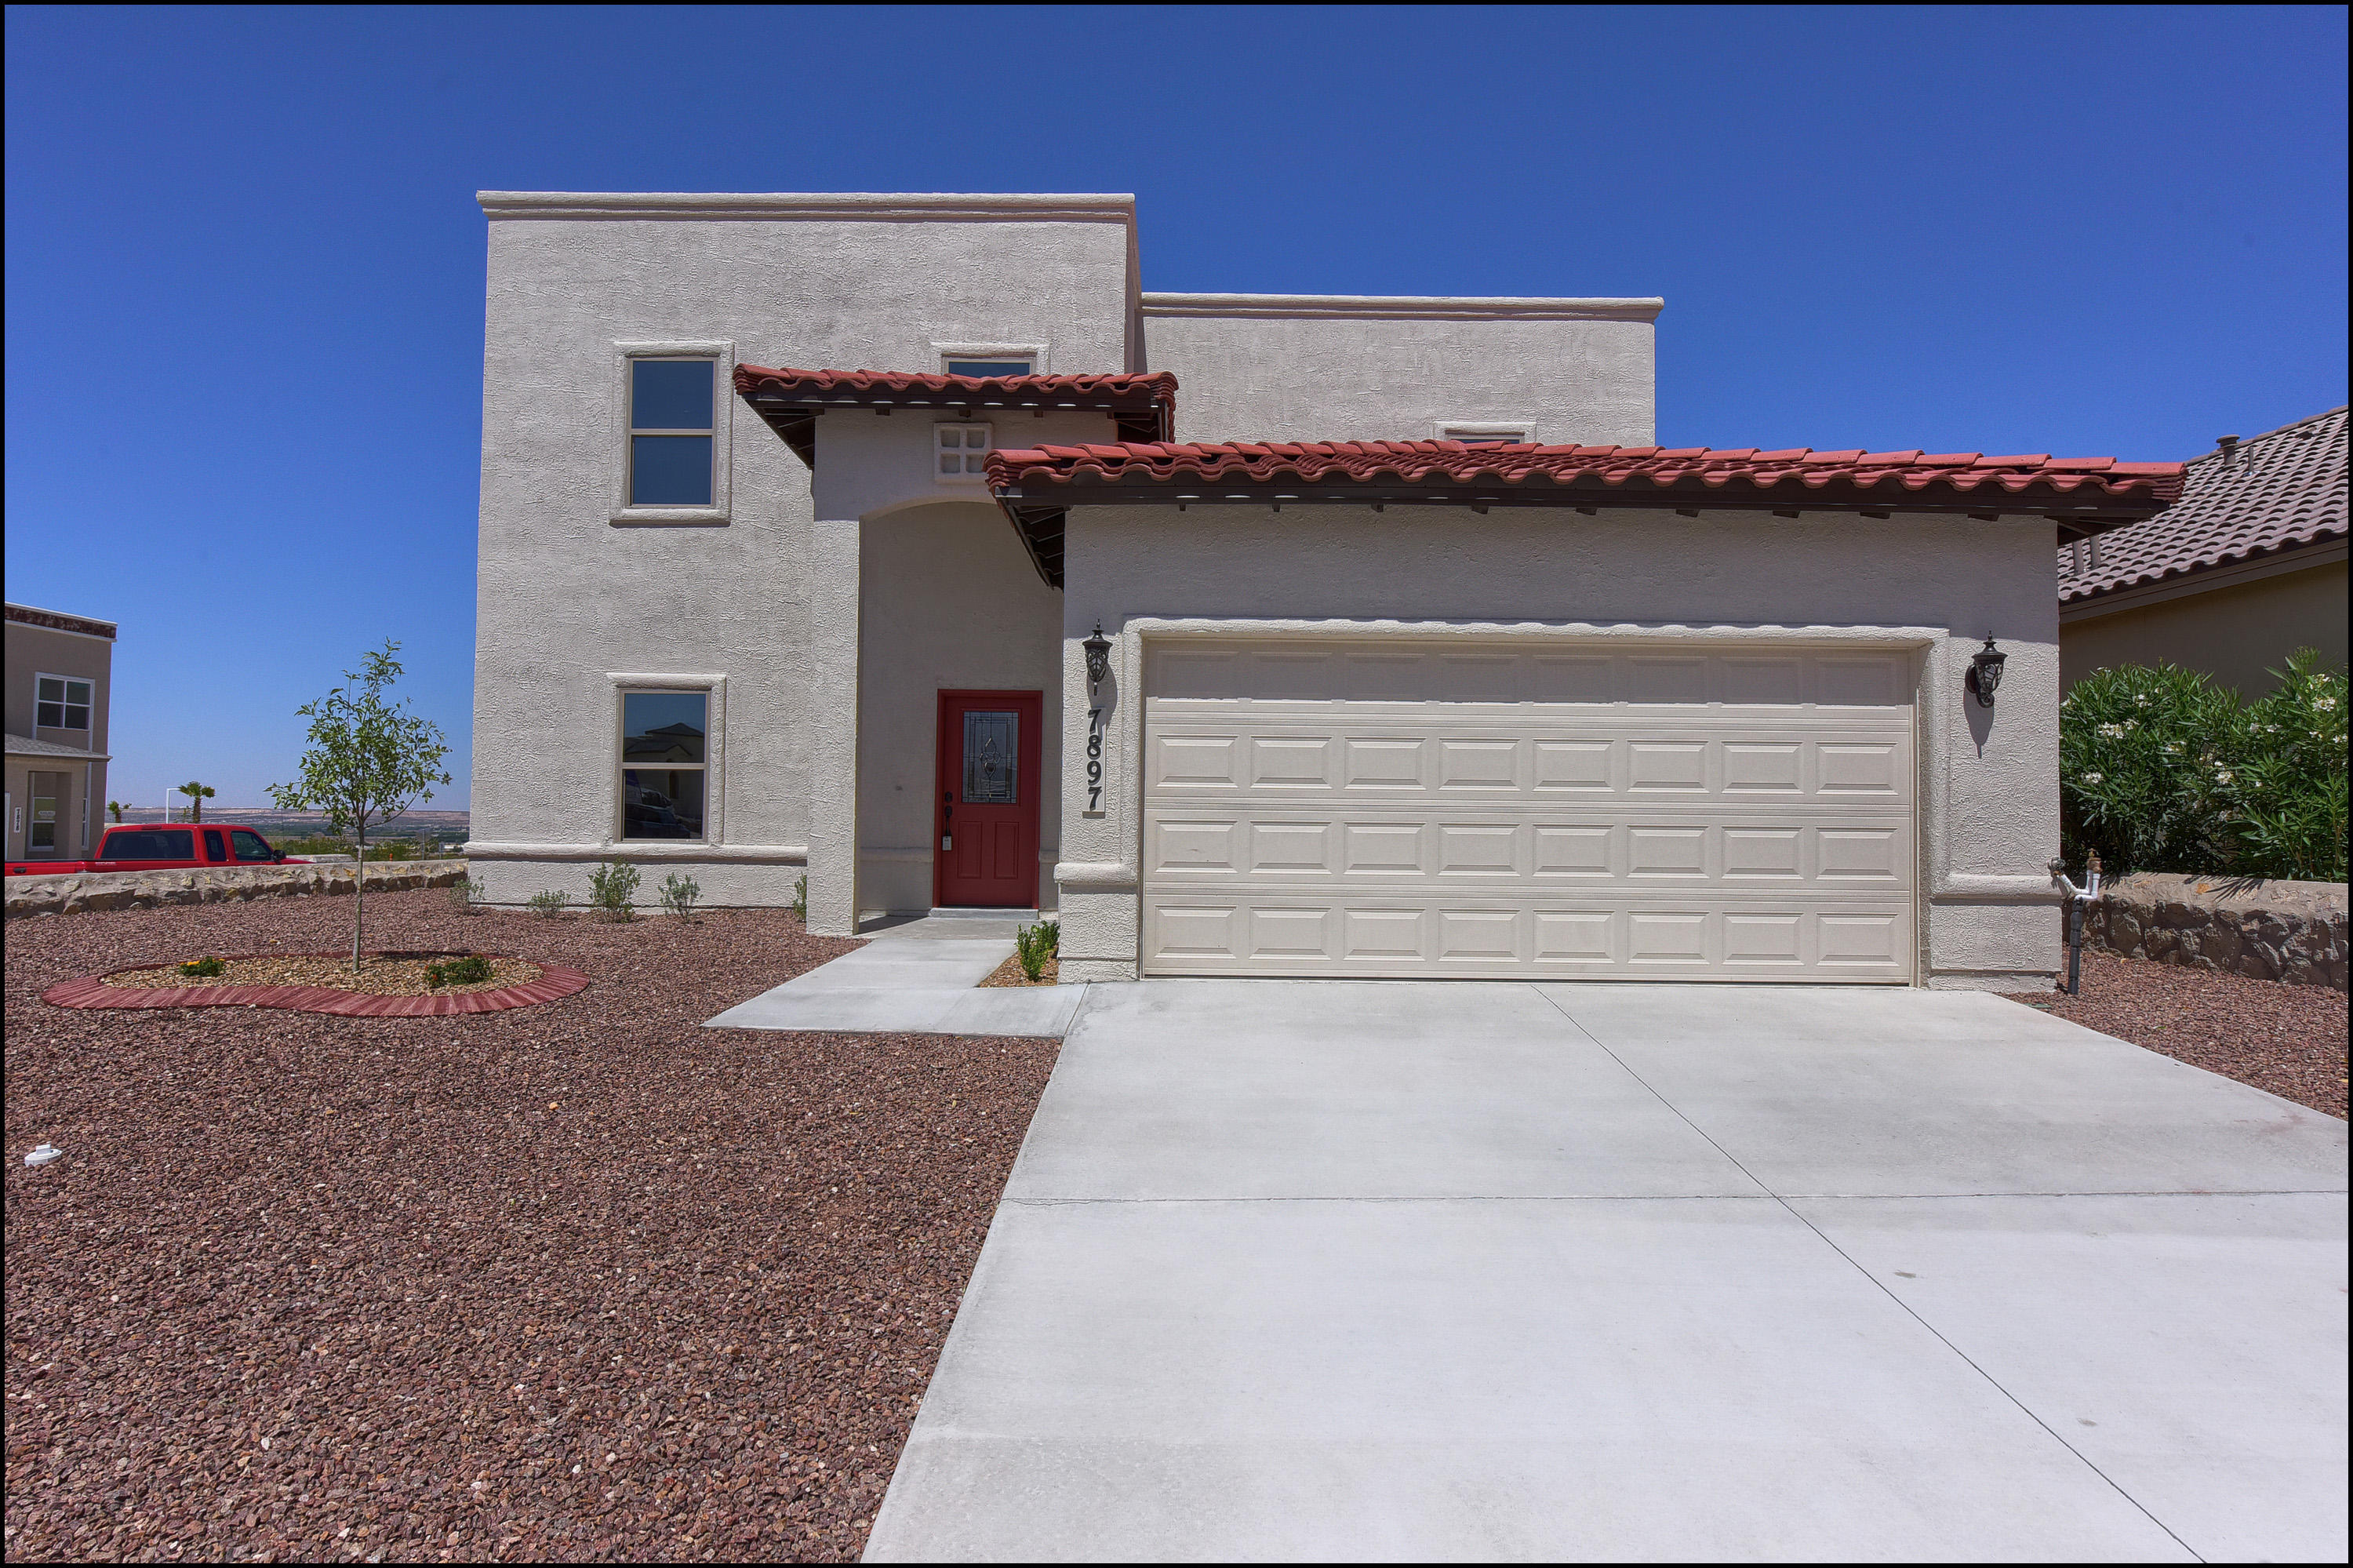 7897 ENCHANTED RANGE, El Paso, Texas 79911, 4 Bedrooms Bedrooms, ,3 BathroomsBathrooms,Residential,For sale,ENCHANTED RANGE,808945